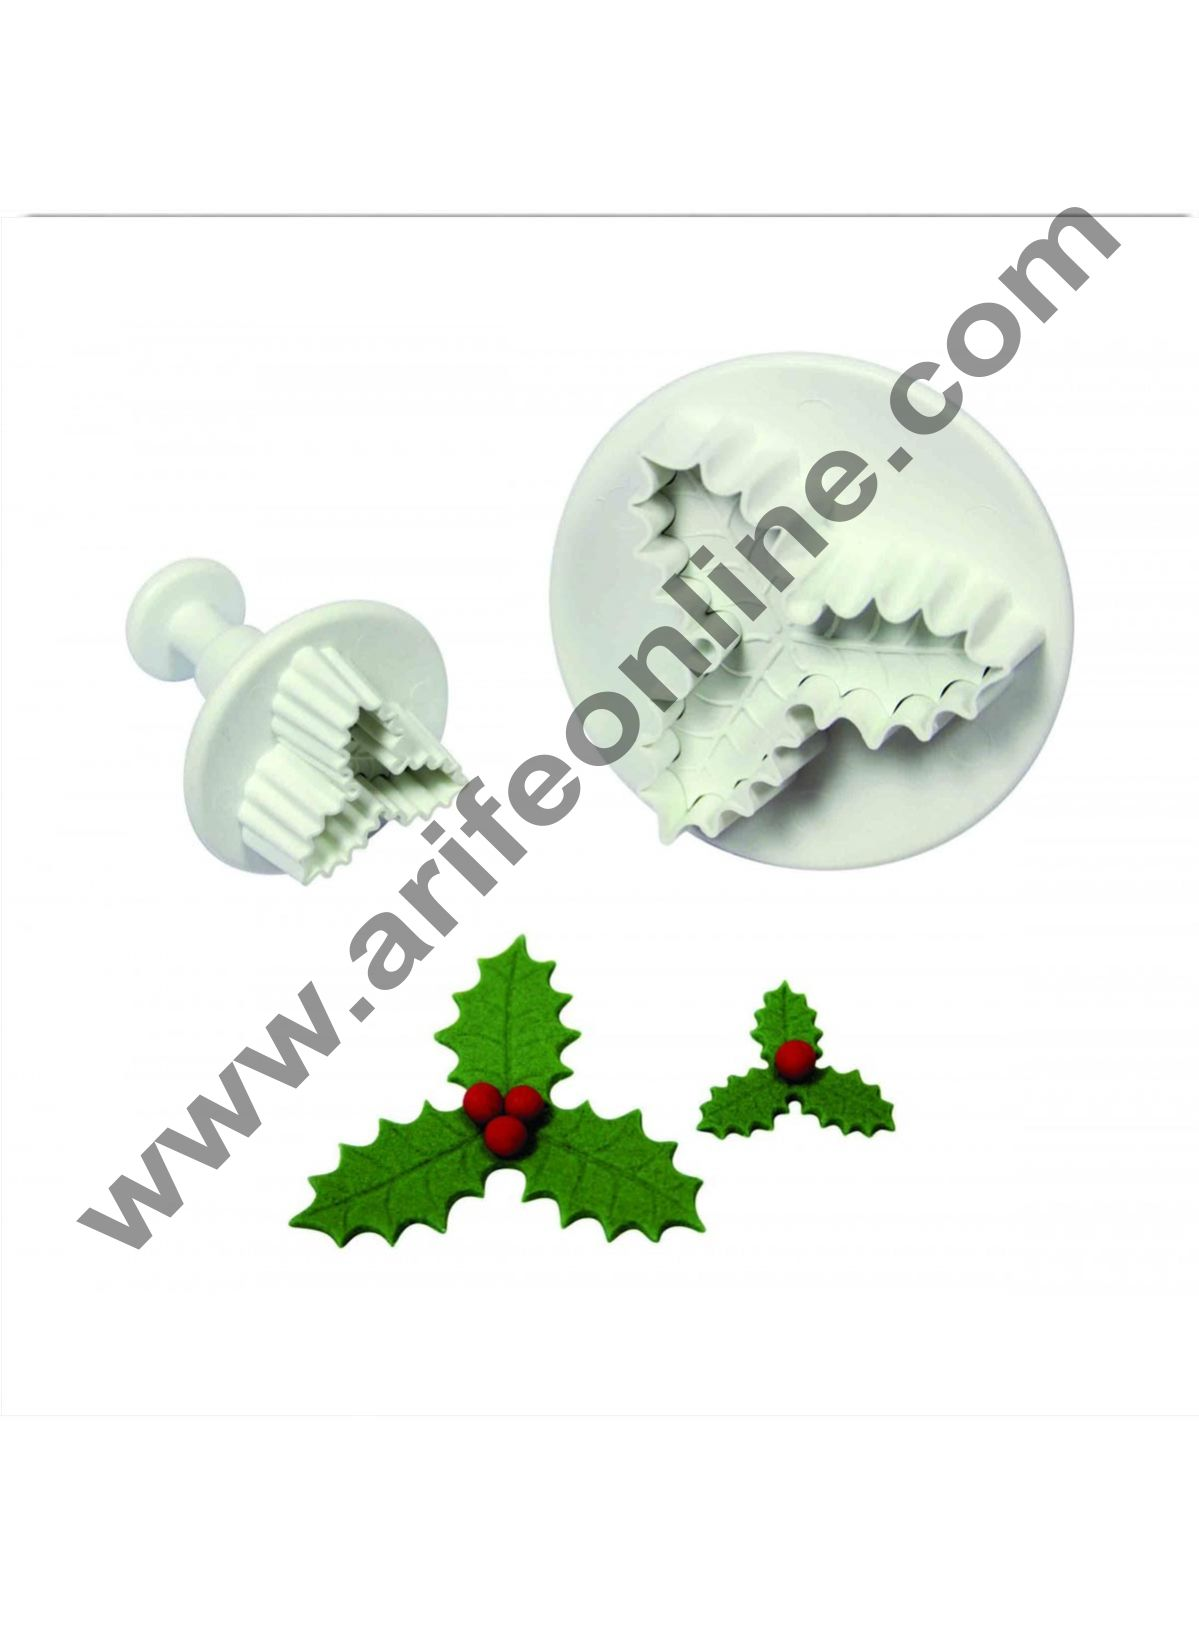 Cake Decor 2pcs Veined Three-leaf Holly Fondant Plunger Cutters, Set of 2